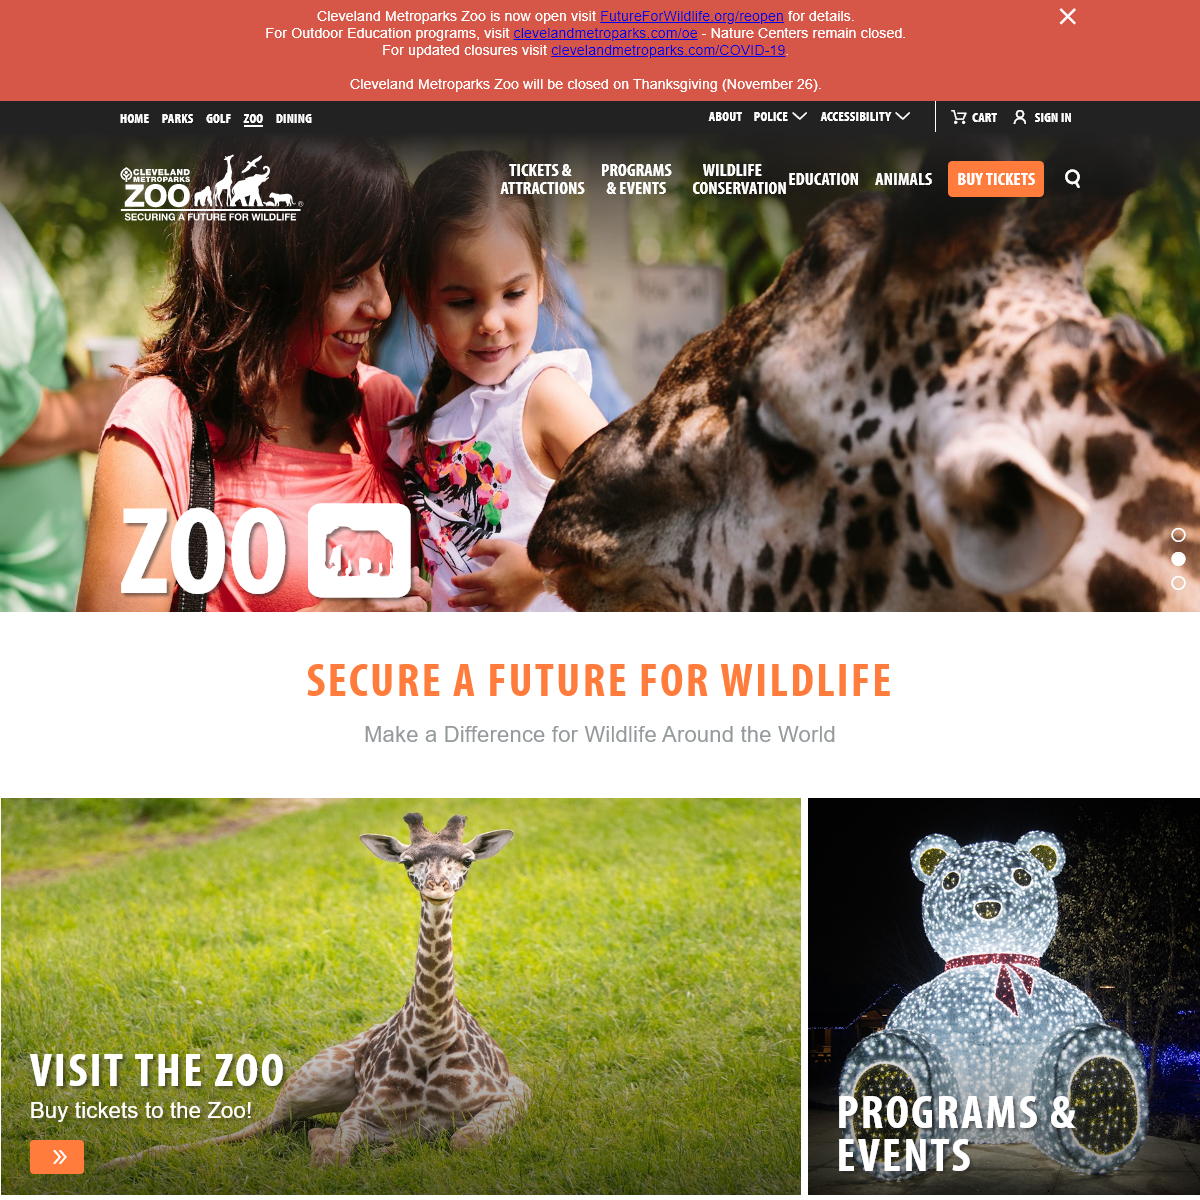 Visit a Top Ohio Zoo - Cleveland Metroparks Zoo - Cleveland Metroparks